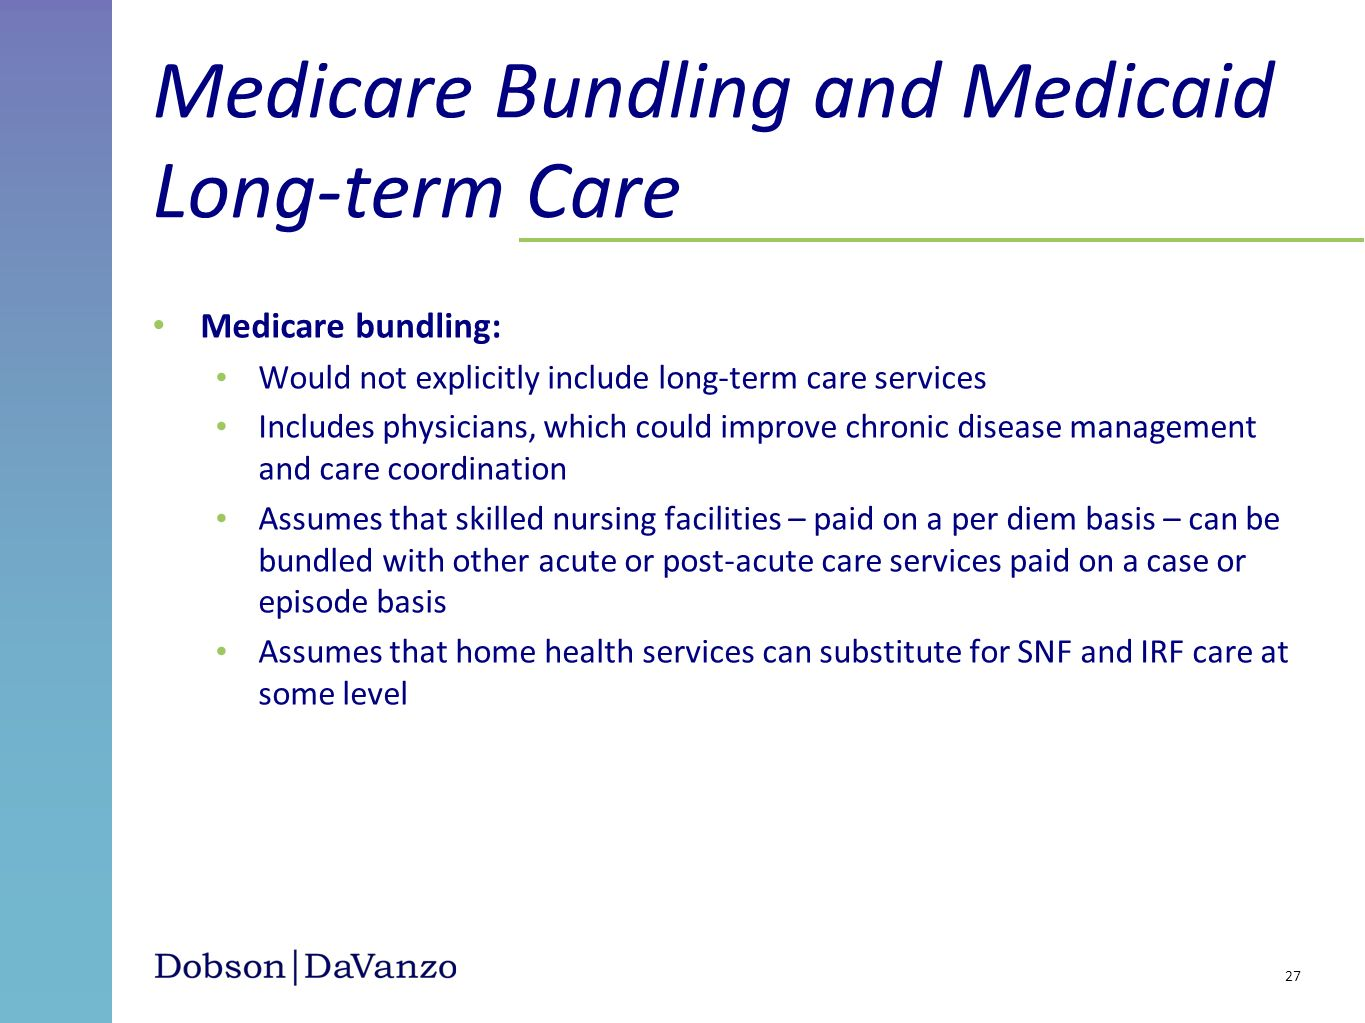 Medicare Bundling and Medicaid Long-term Care